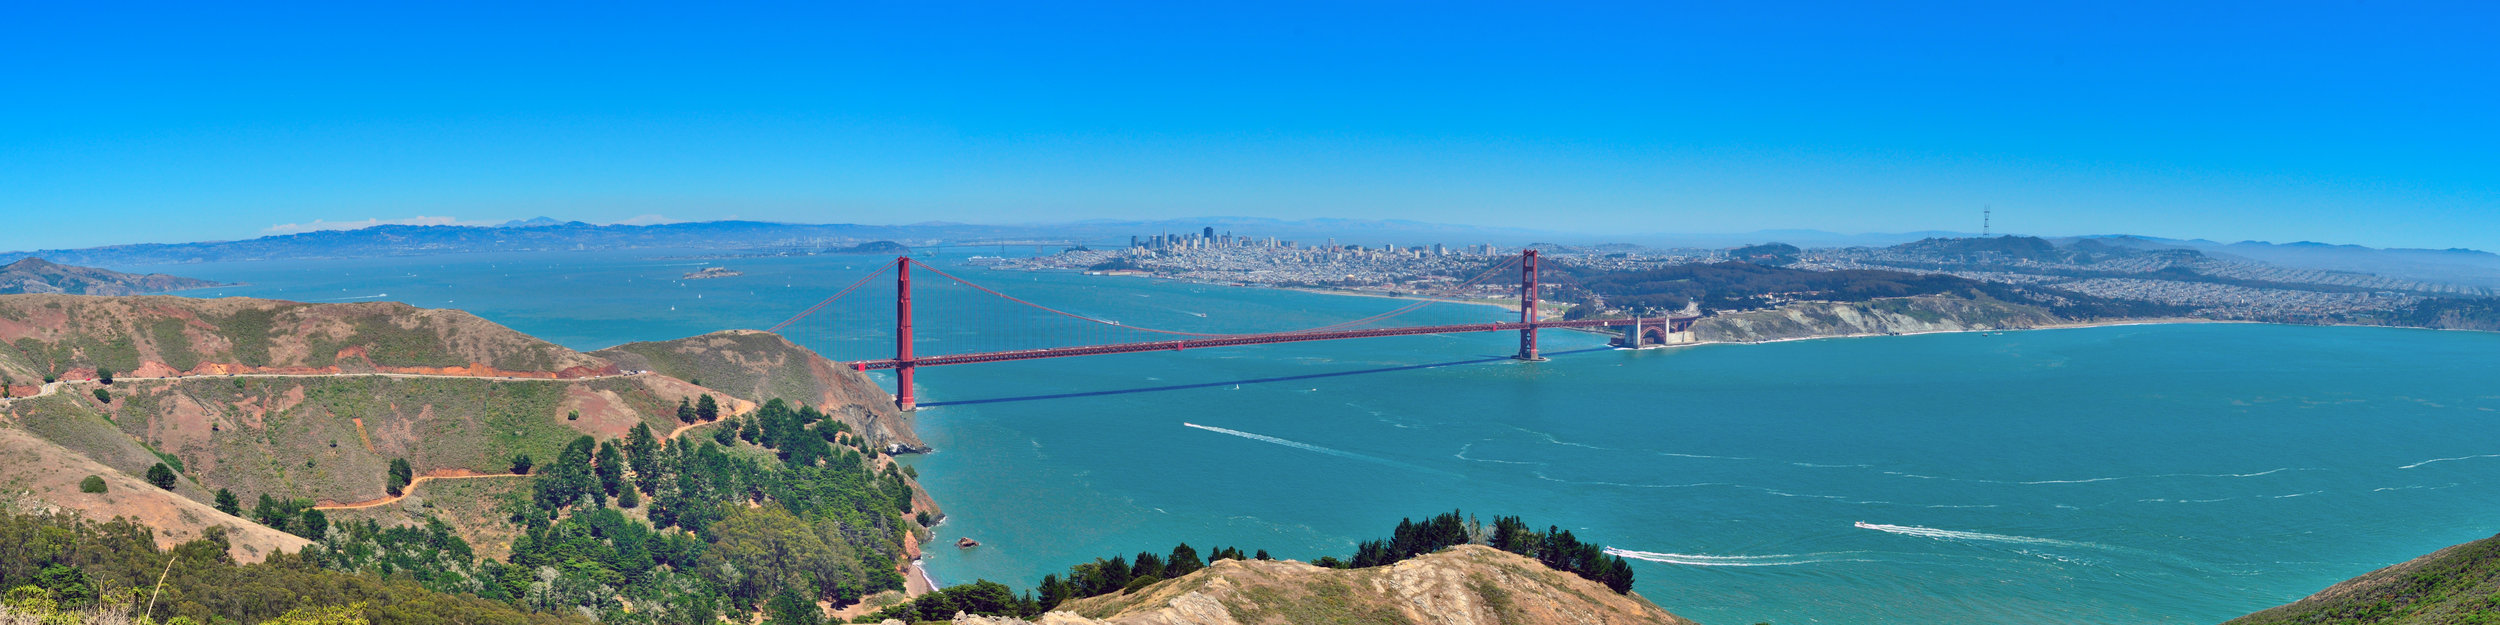 Panorama of SF from Marin Headland.jpg